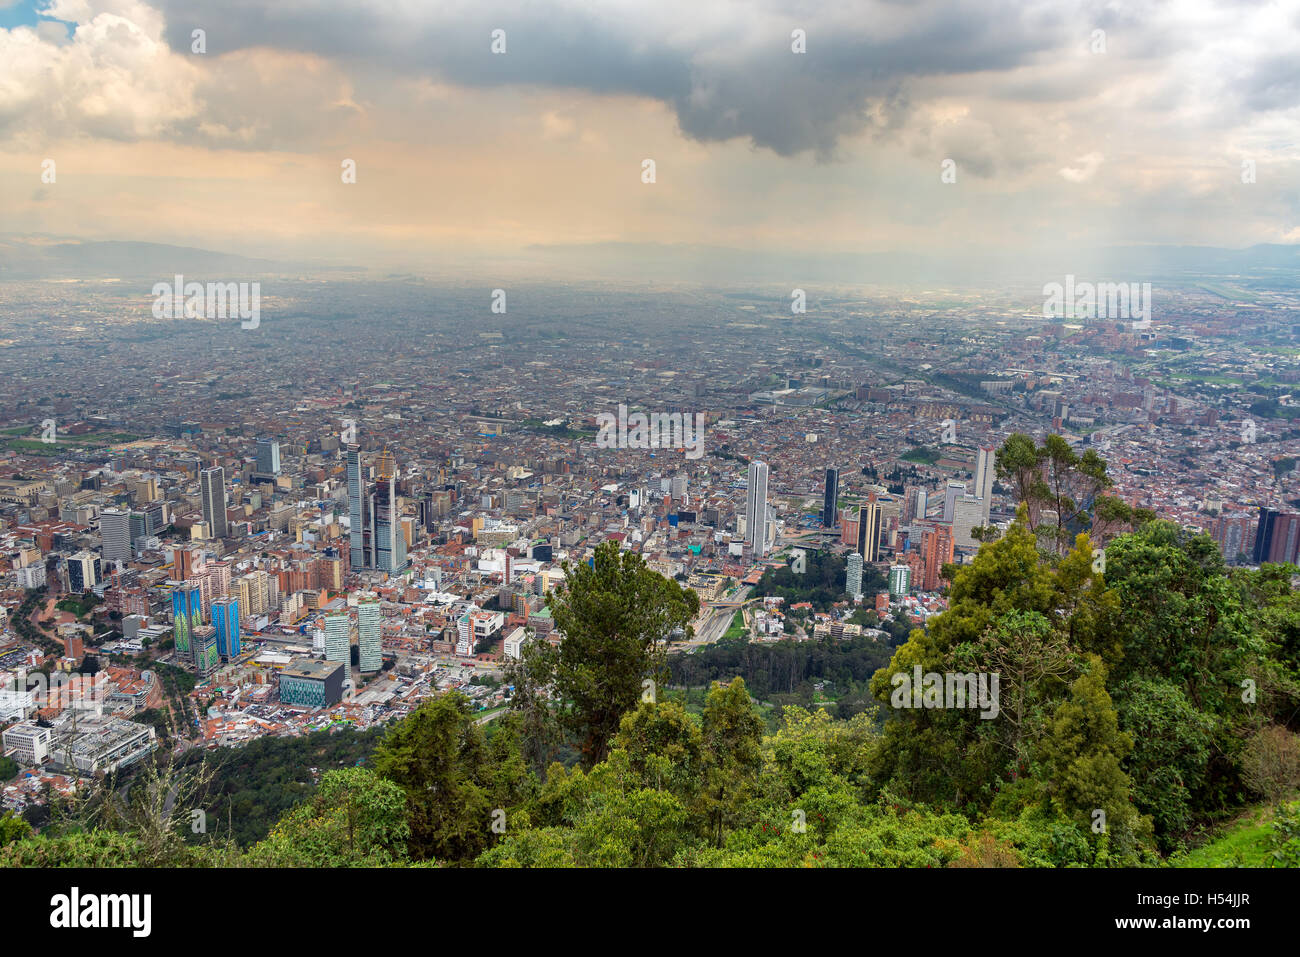 Cityscape of downtown Bogota, Colombia as seen from Monserrate - Stock Image